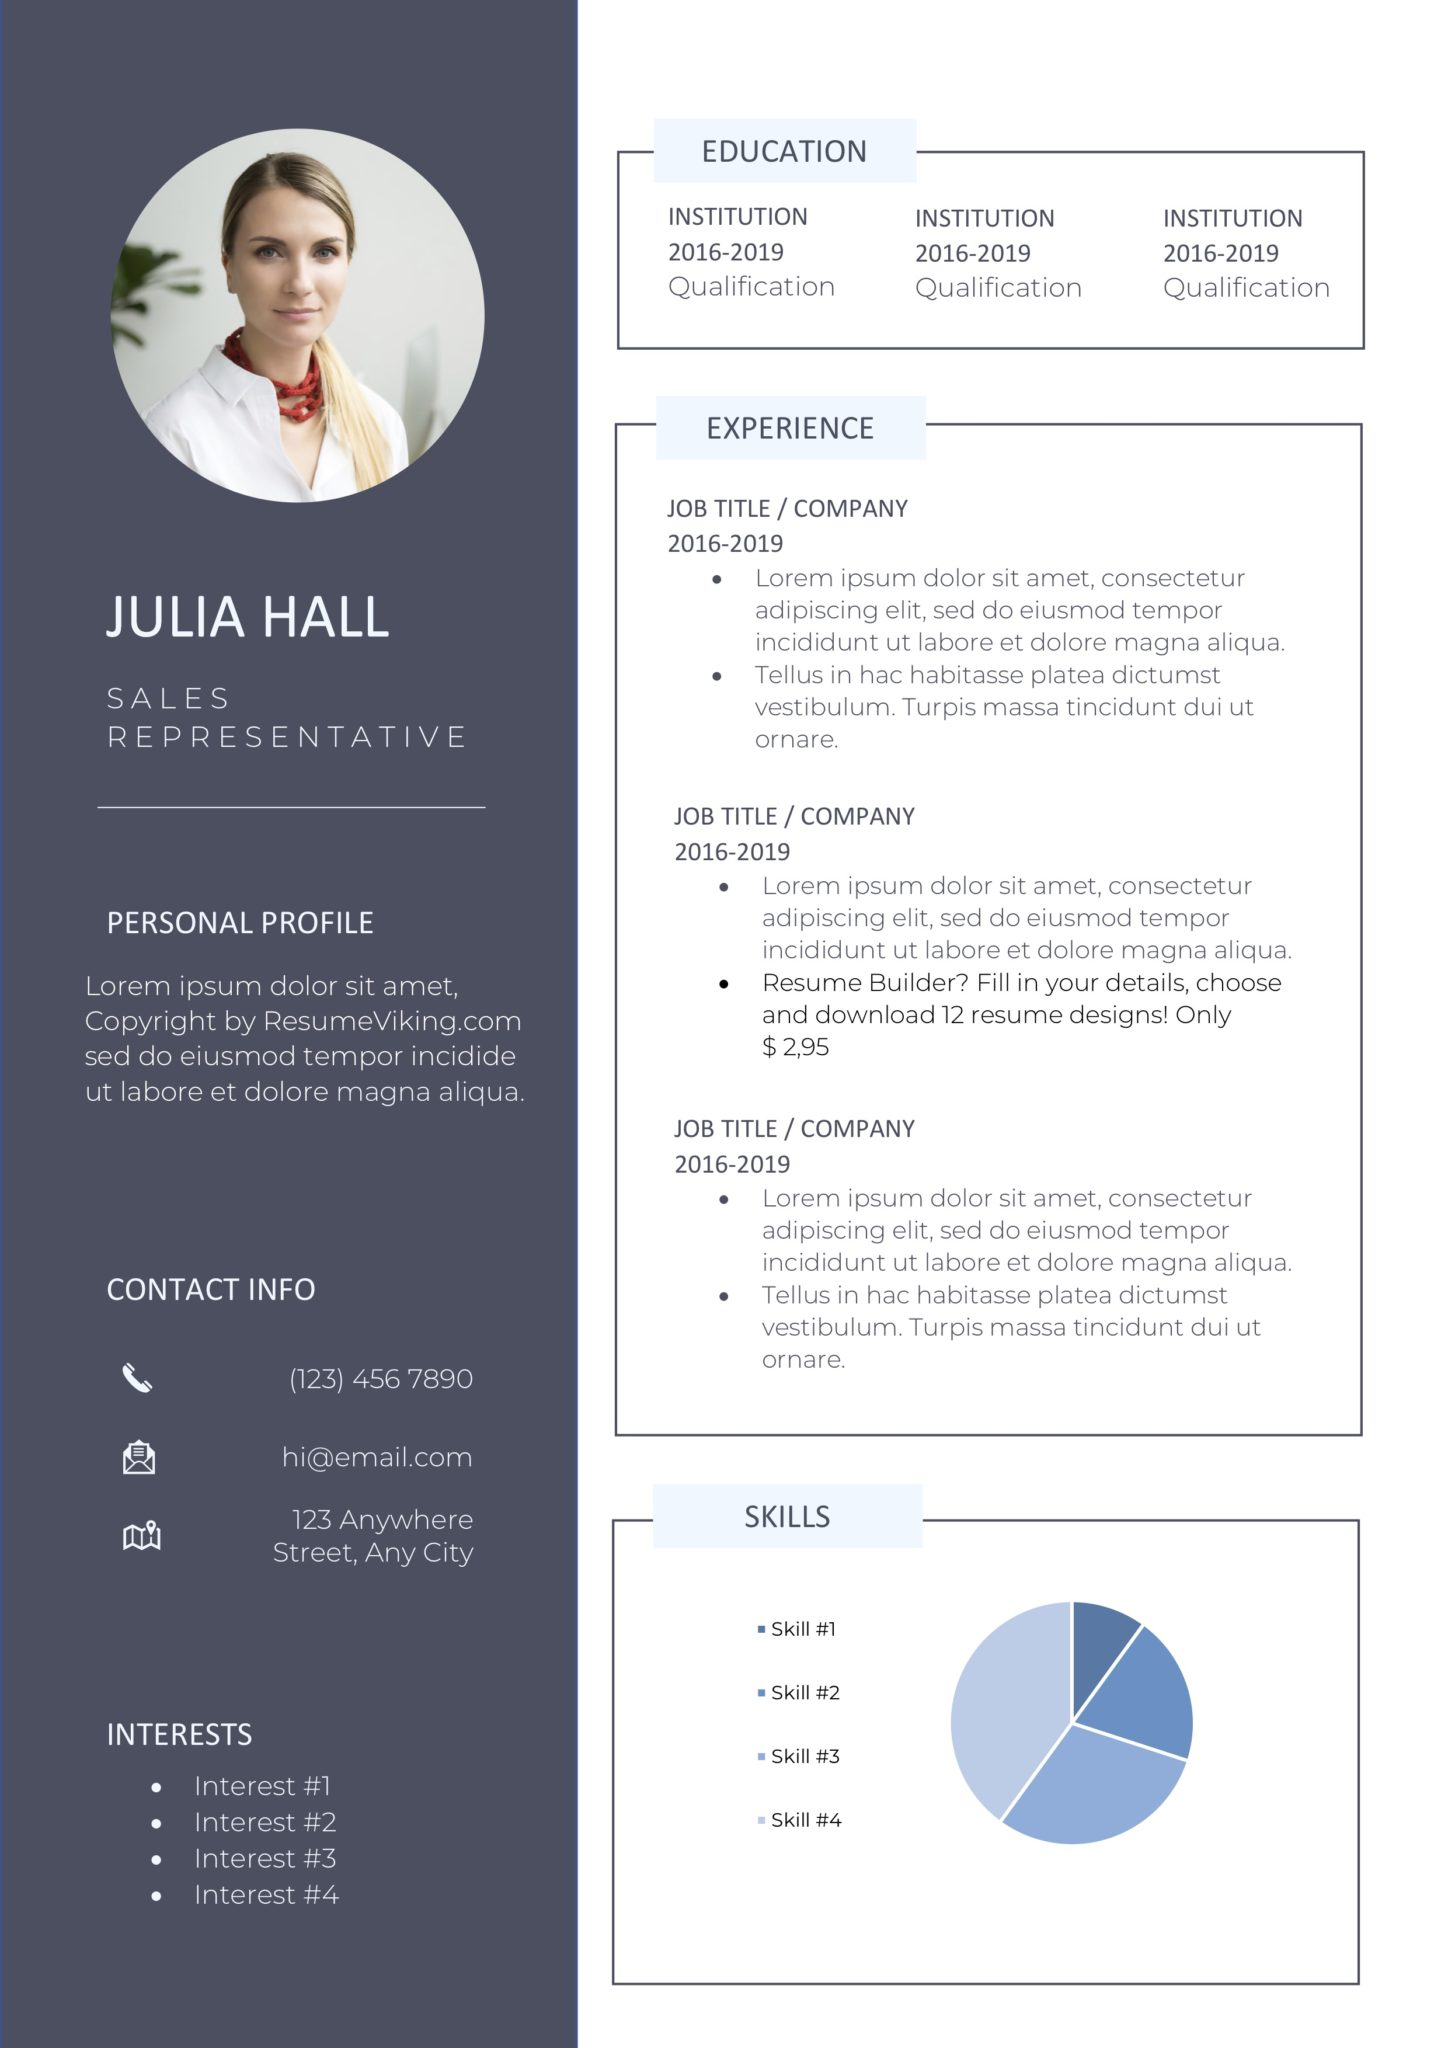 free word resume templates in ms builder microsoft template resumeviking scaled quality Resume Resume Builder Microsoft Word 2020